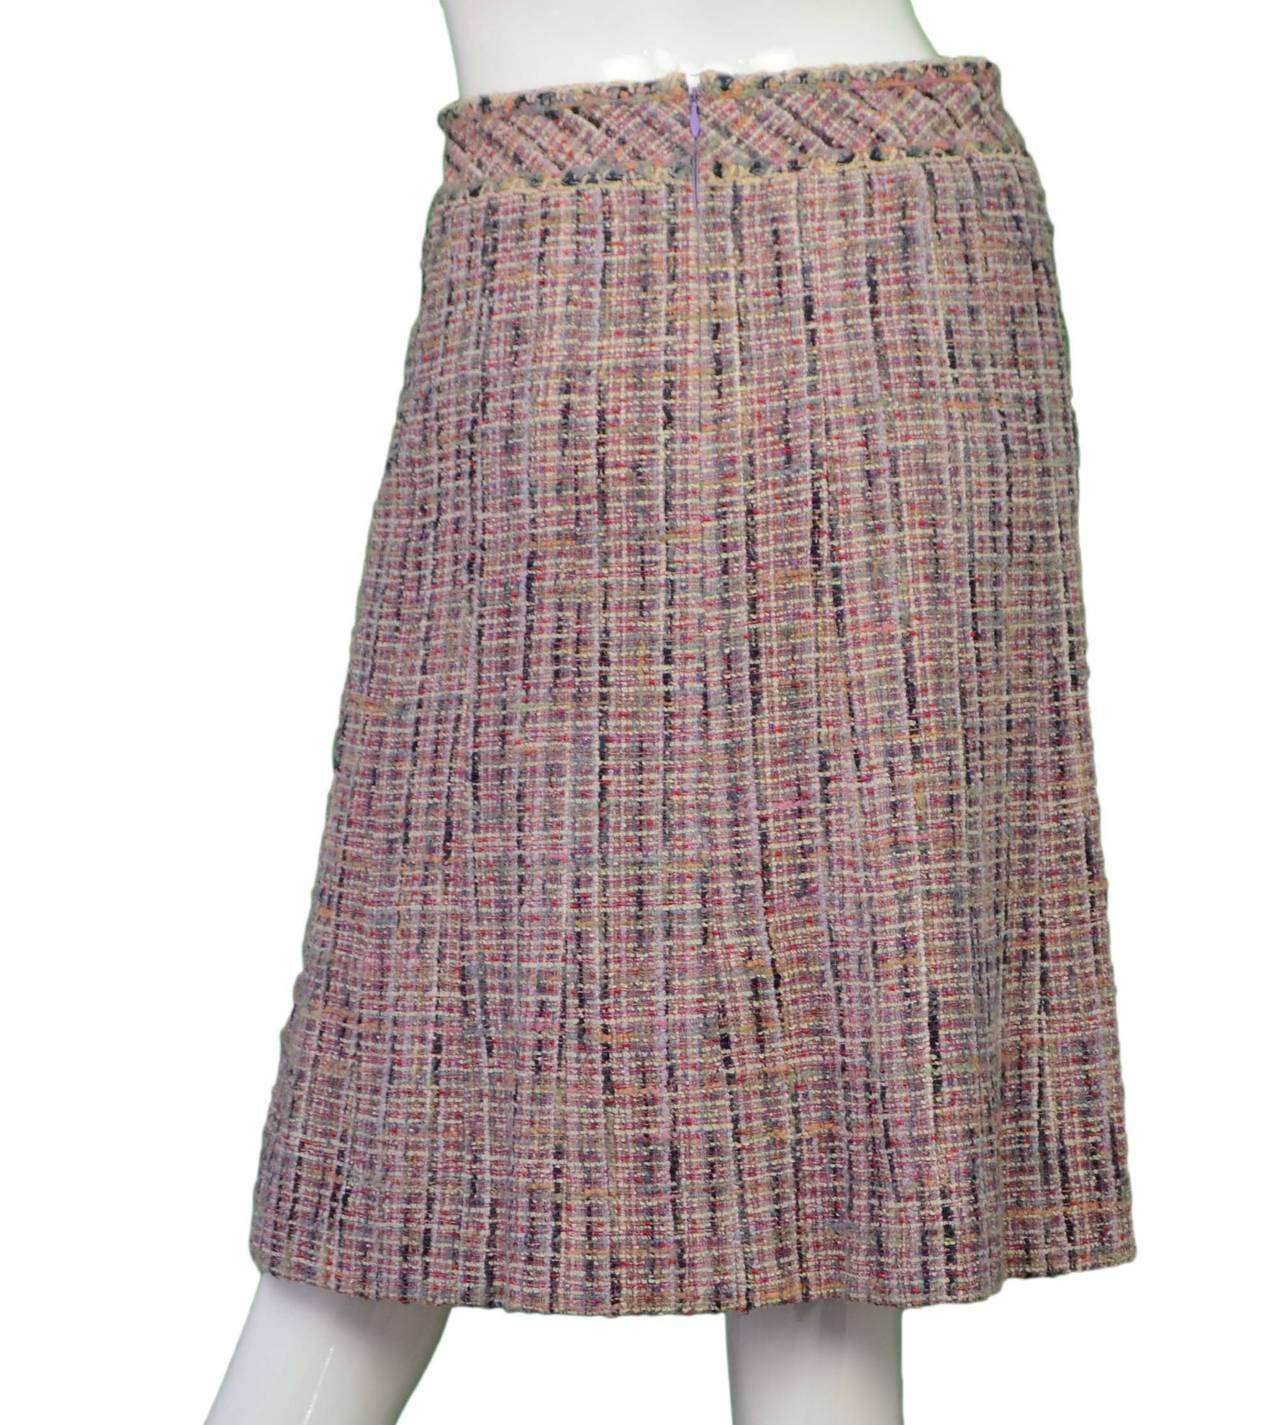 CHANEL Multi-Colored Tweed A-Line Skirt sz 34 3